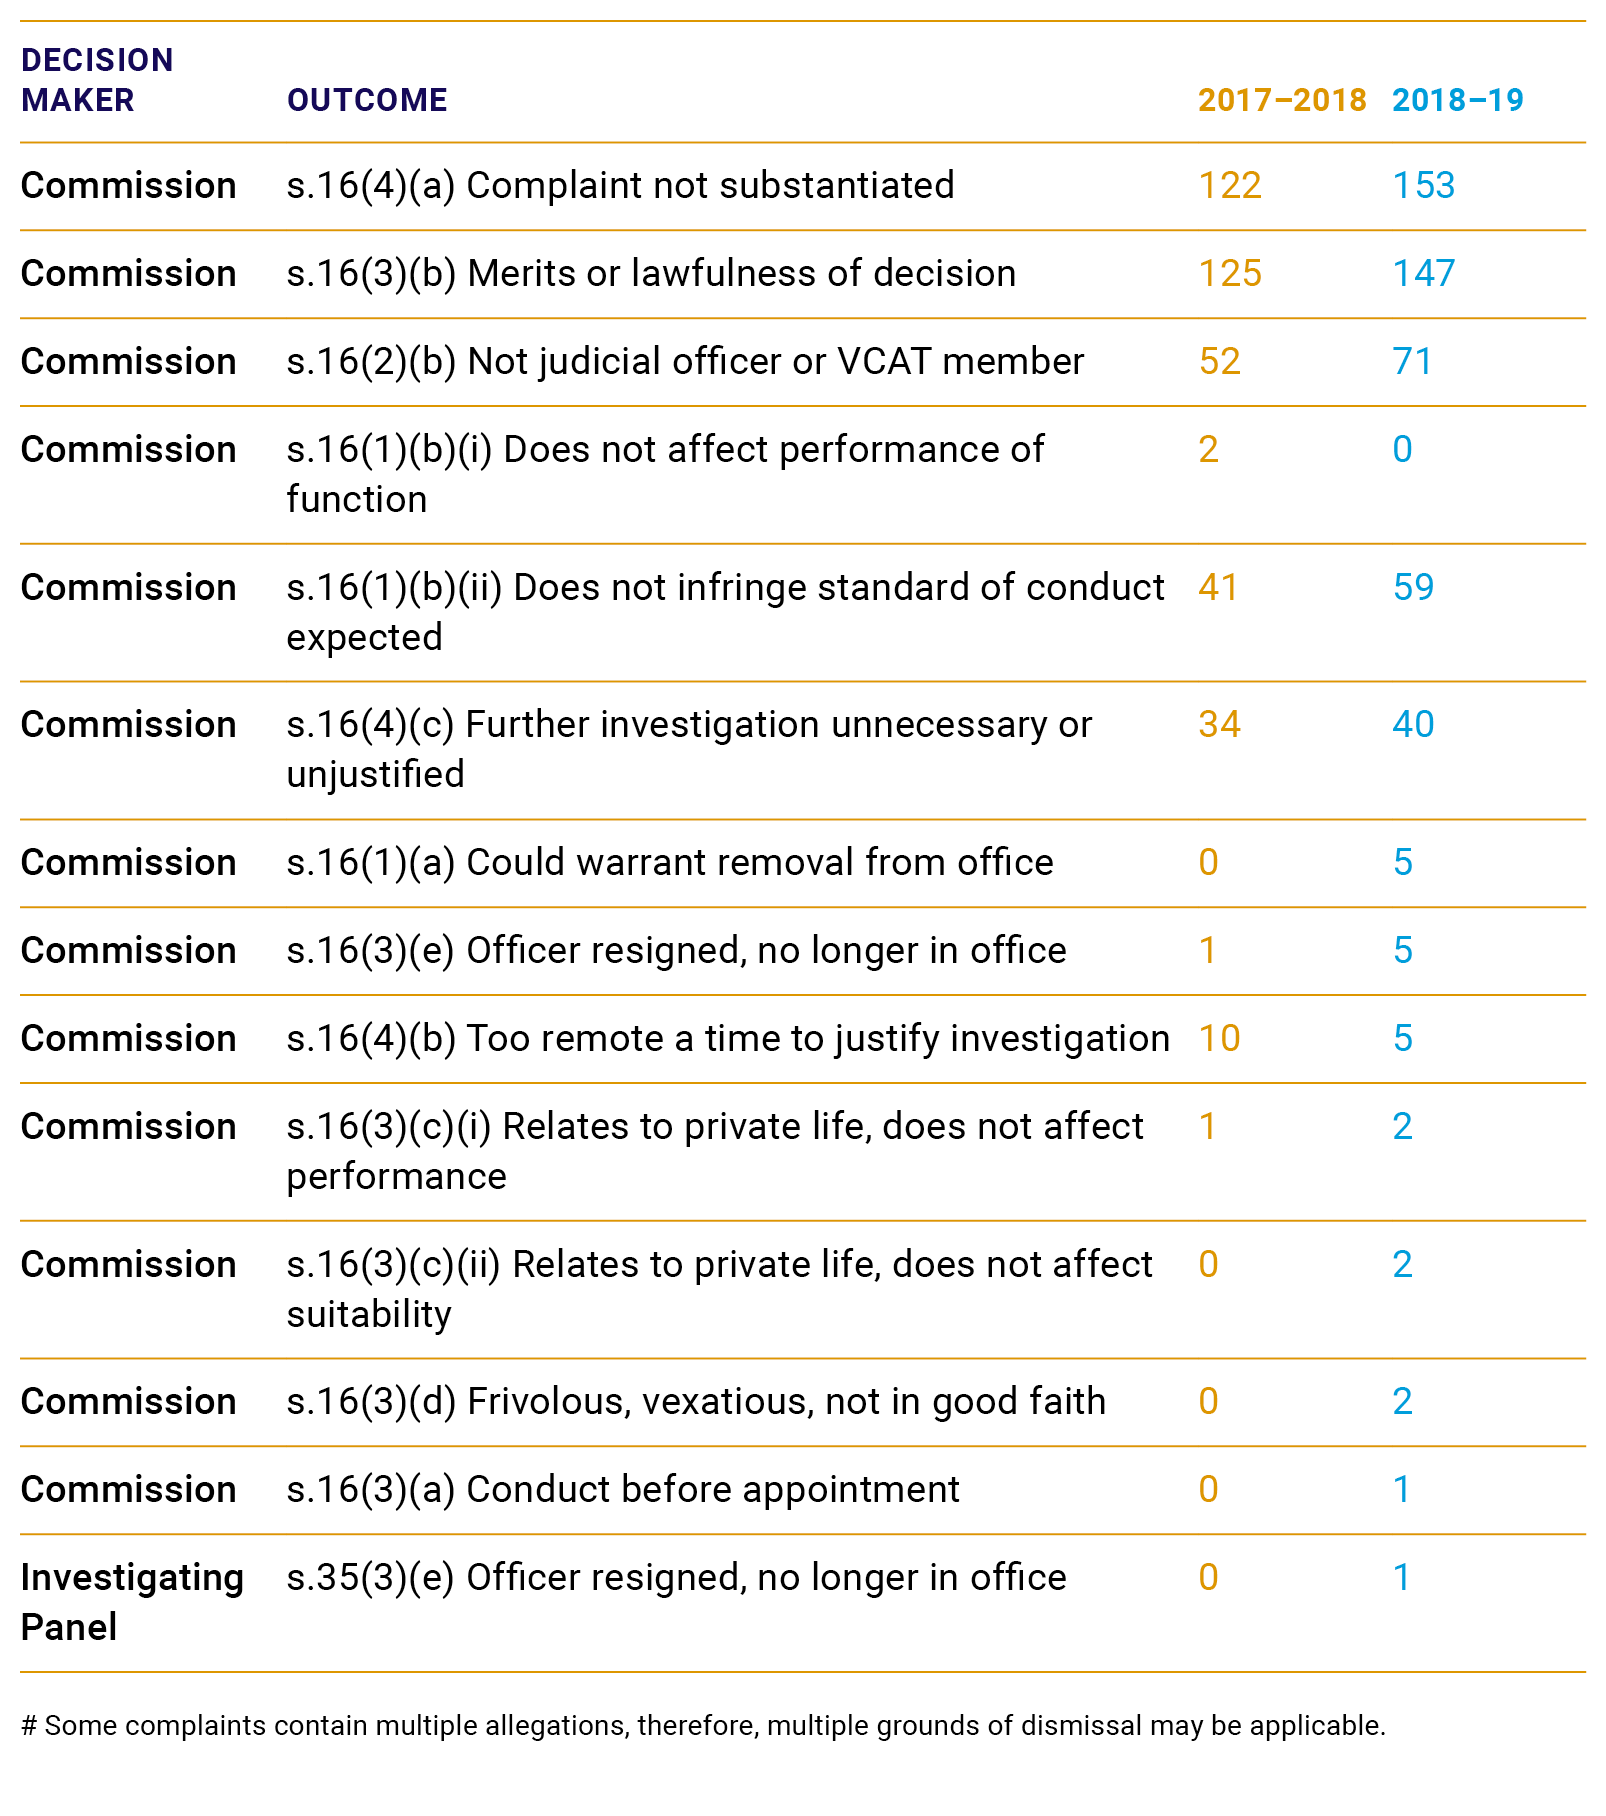 Graphic depicting the grounds of dismissal of complaints and referrals received by the Judicial Commission of Victoria